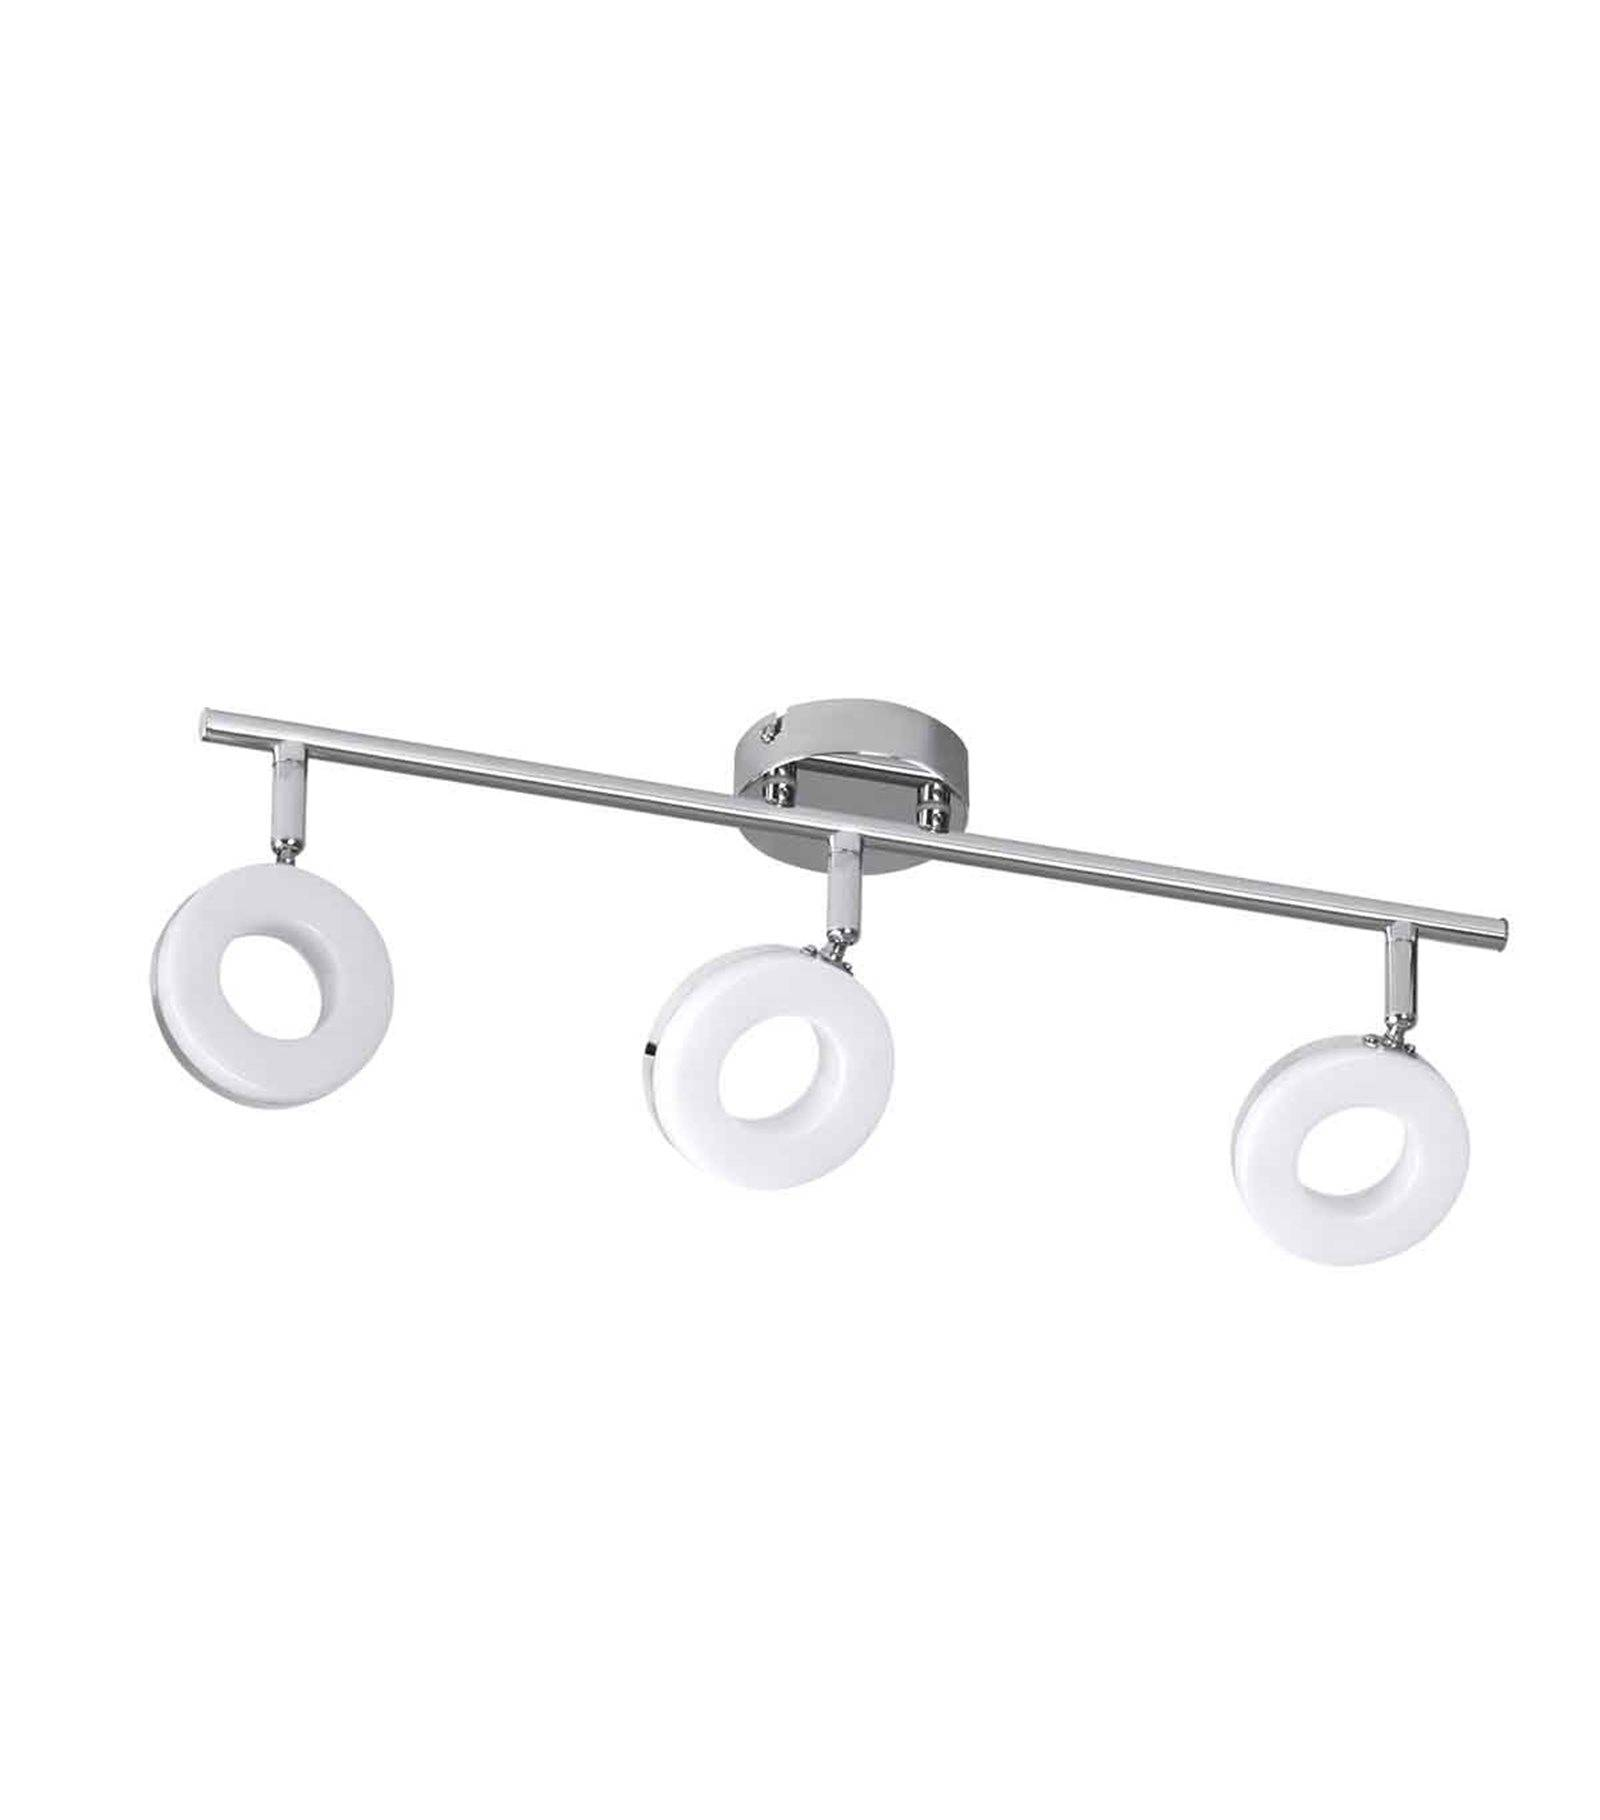 plafonnier luminaire garna chrome rond 3 spots led int gr ip20 3x5ww blanc chaud orientable. Black Bedroom Furniture Sets. Home Design Ideas